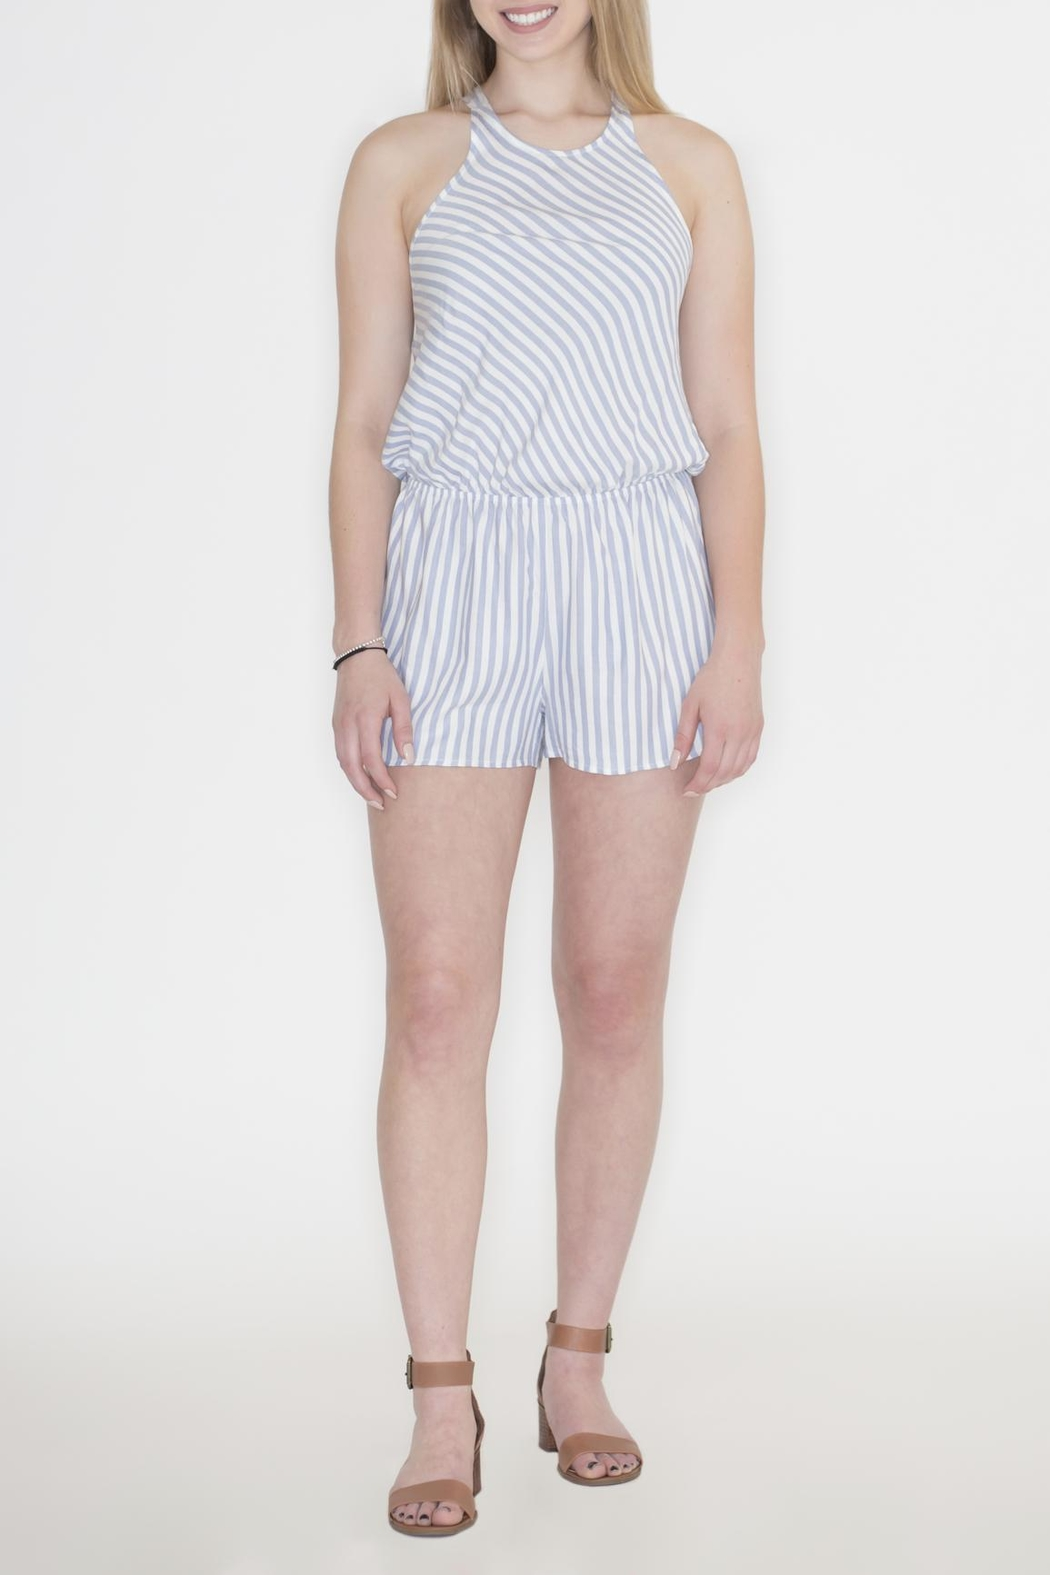 Cherish Striped Crisscross Romper - Back Cropped Image